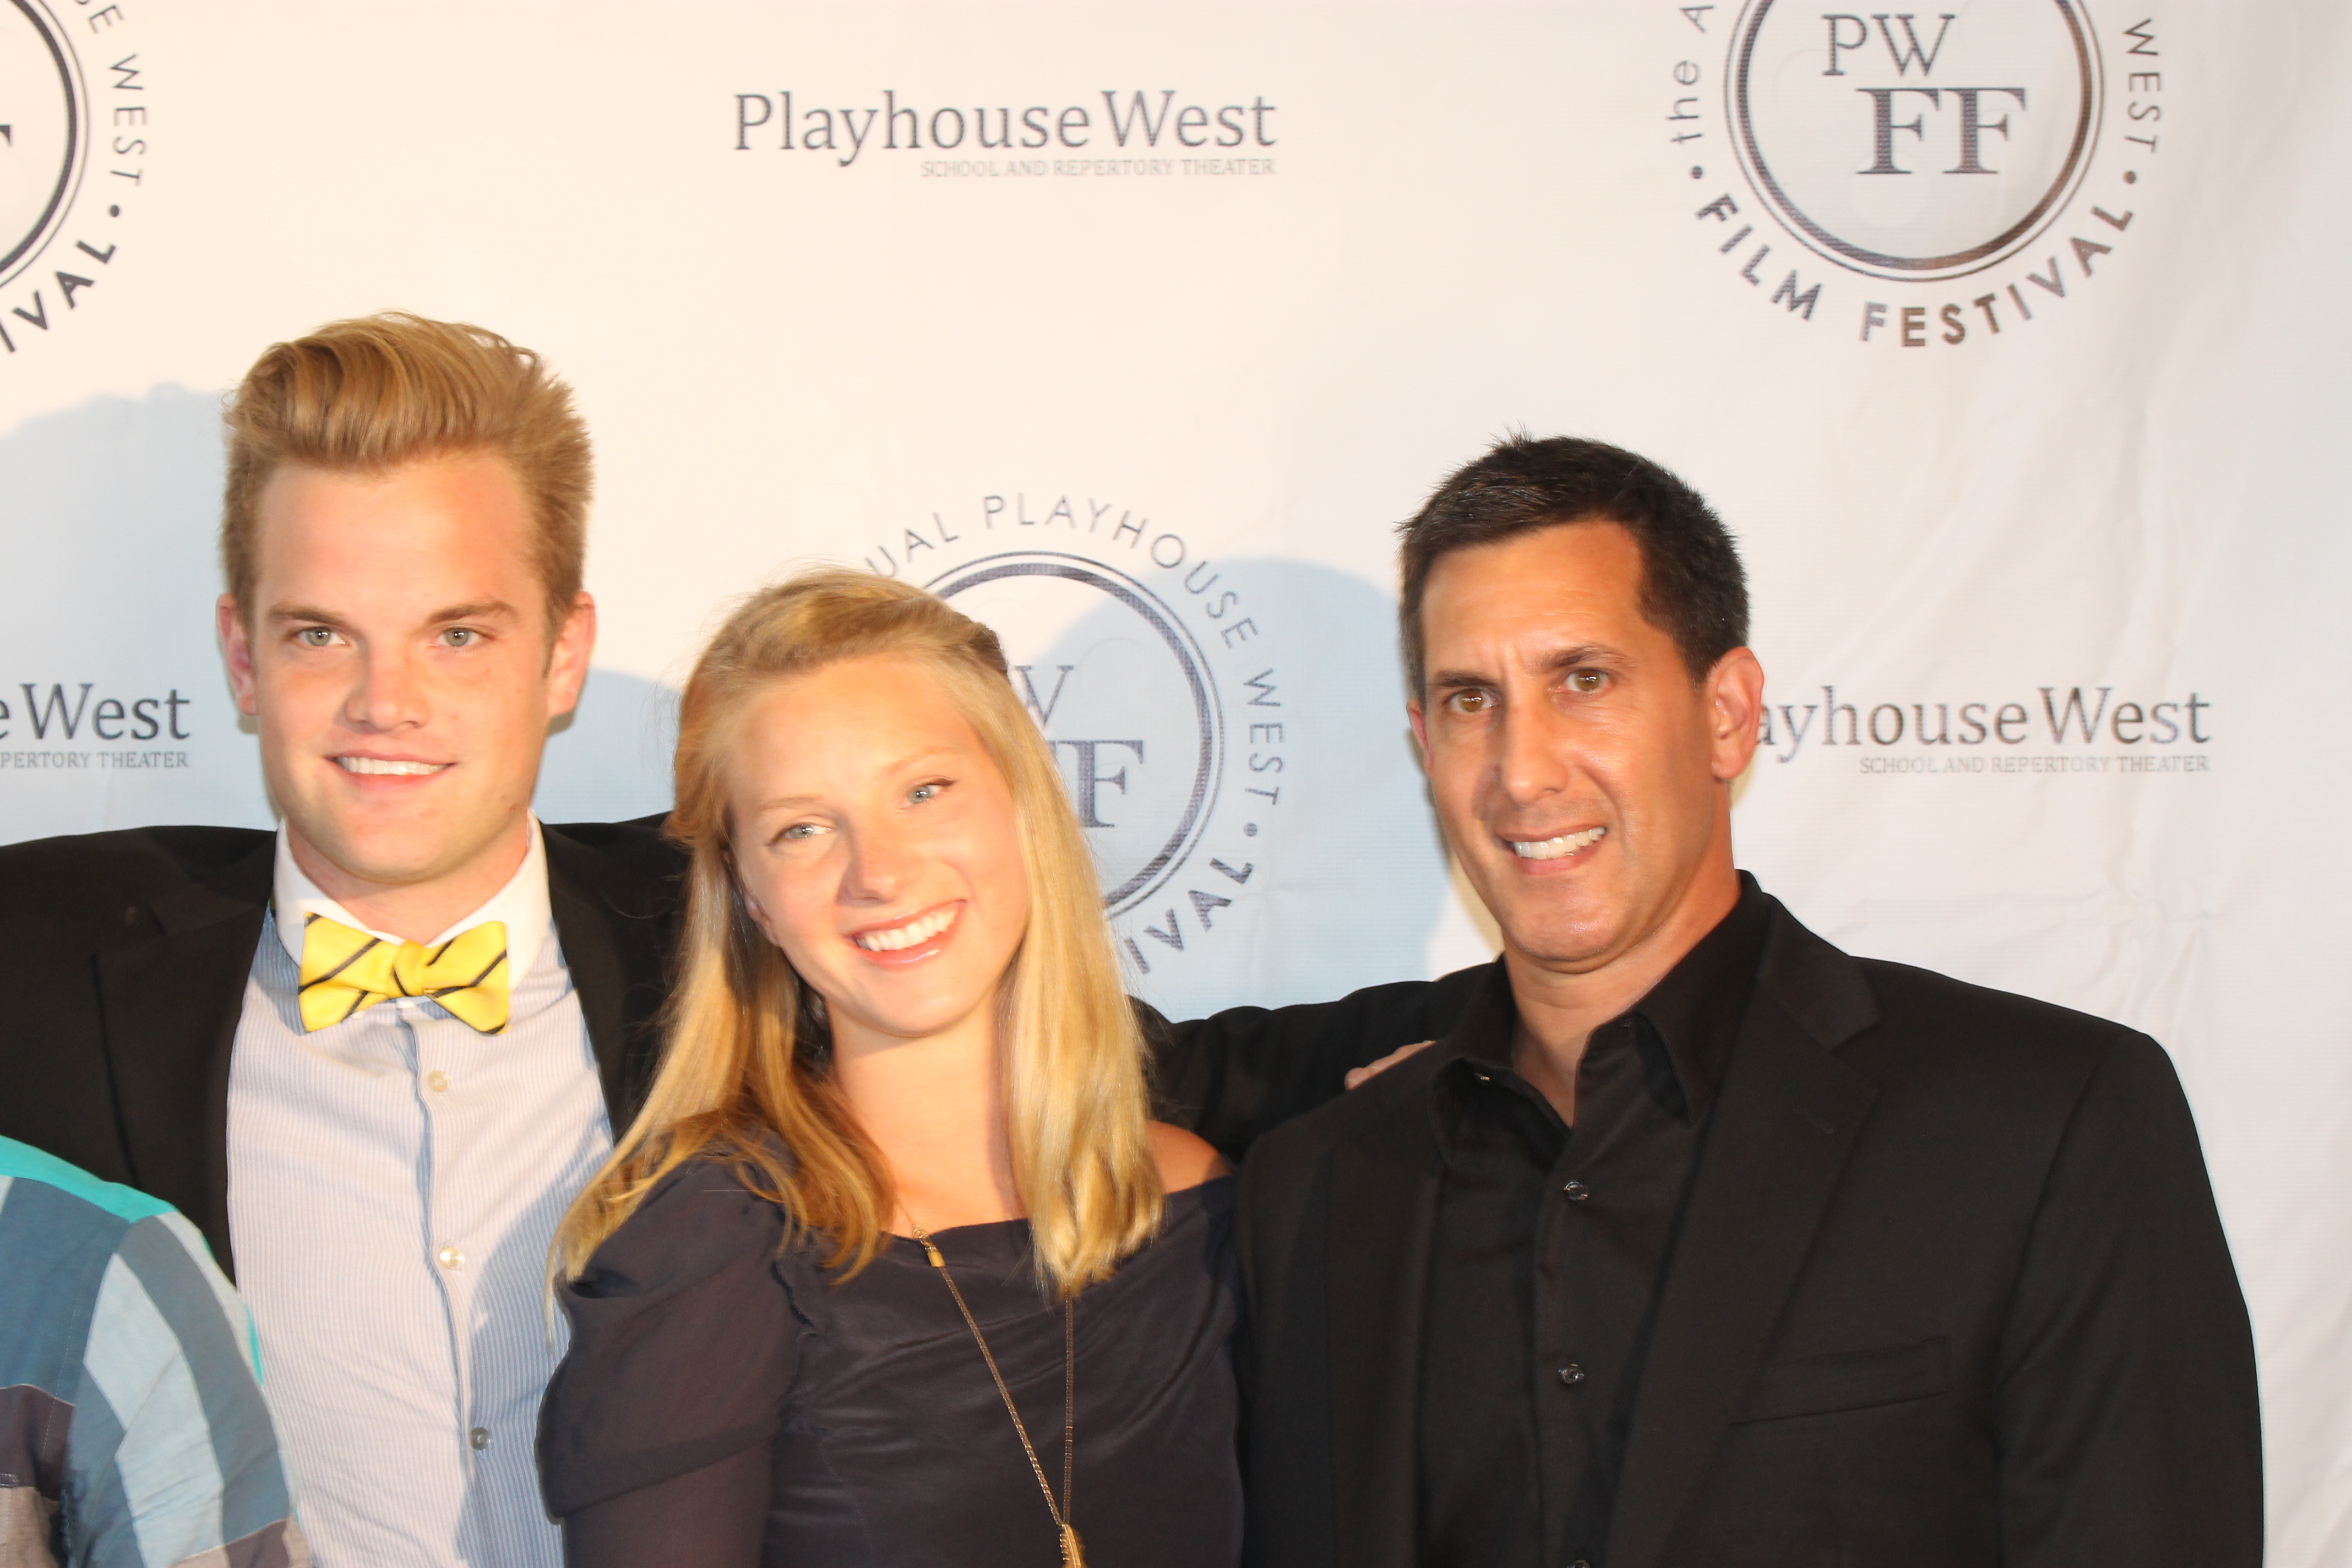 Tony Savant and Heather Morris at the Playhouse West Film Festival